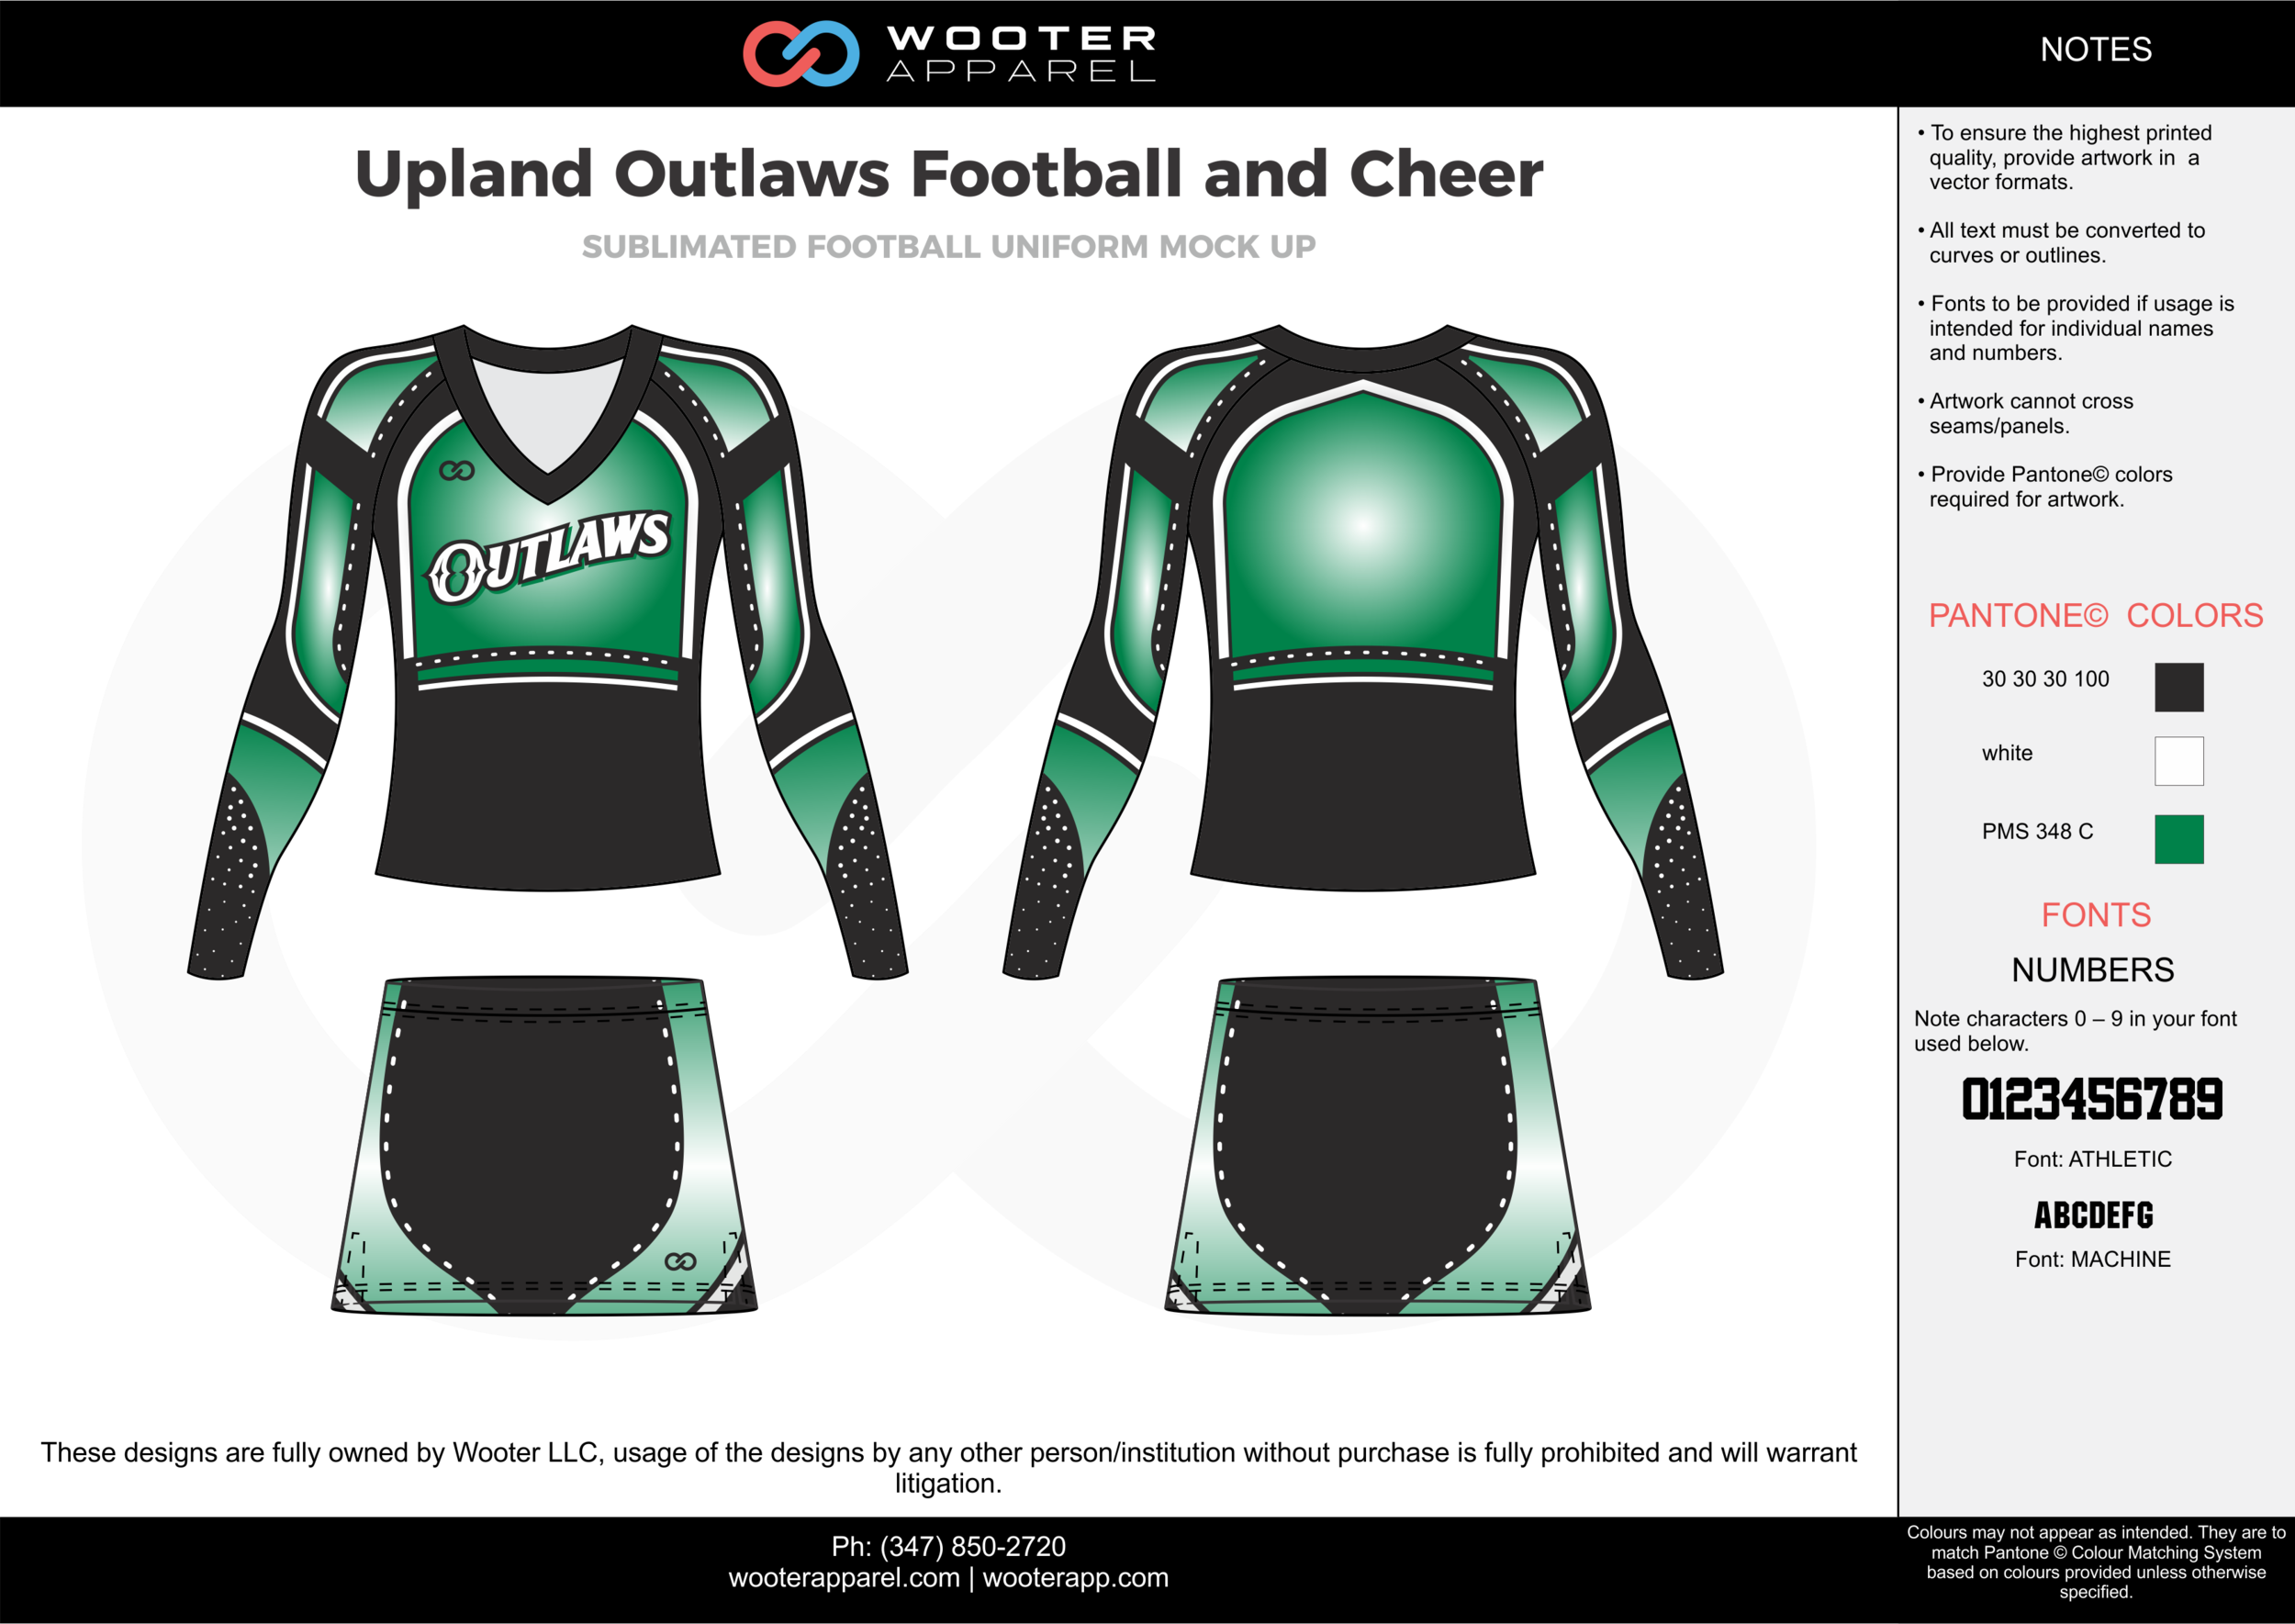 Upland Outlaws Football and Cheer green black white cheerleading uniforms, top, and skirt